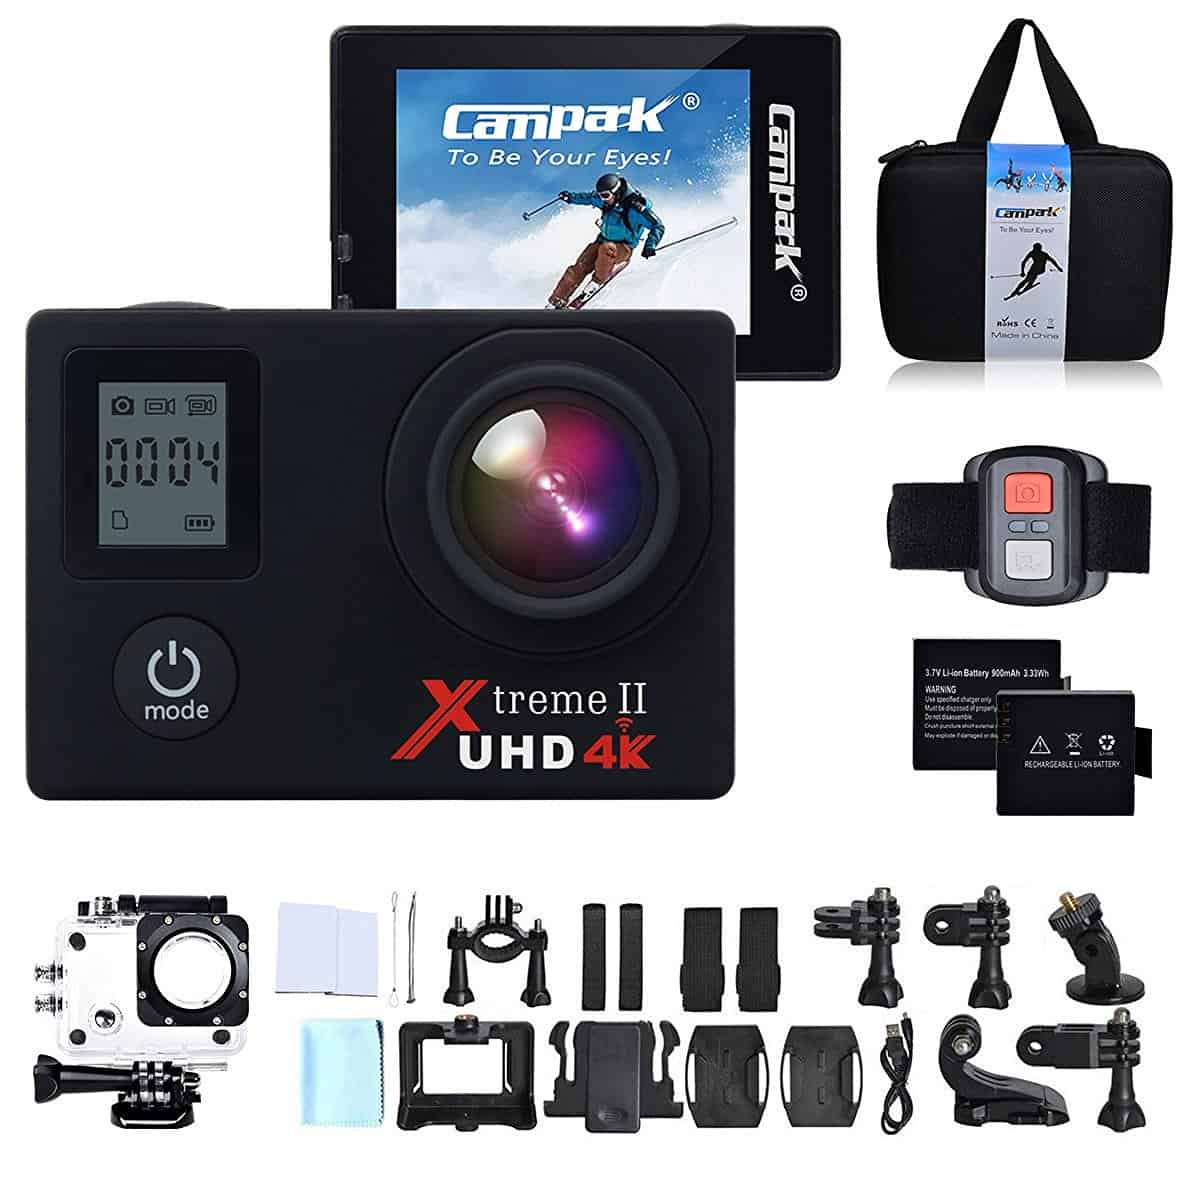 Compark Camera and Accessories